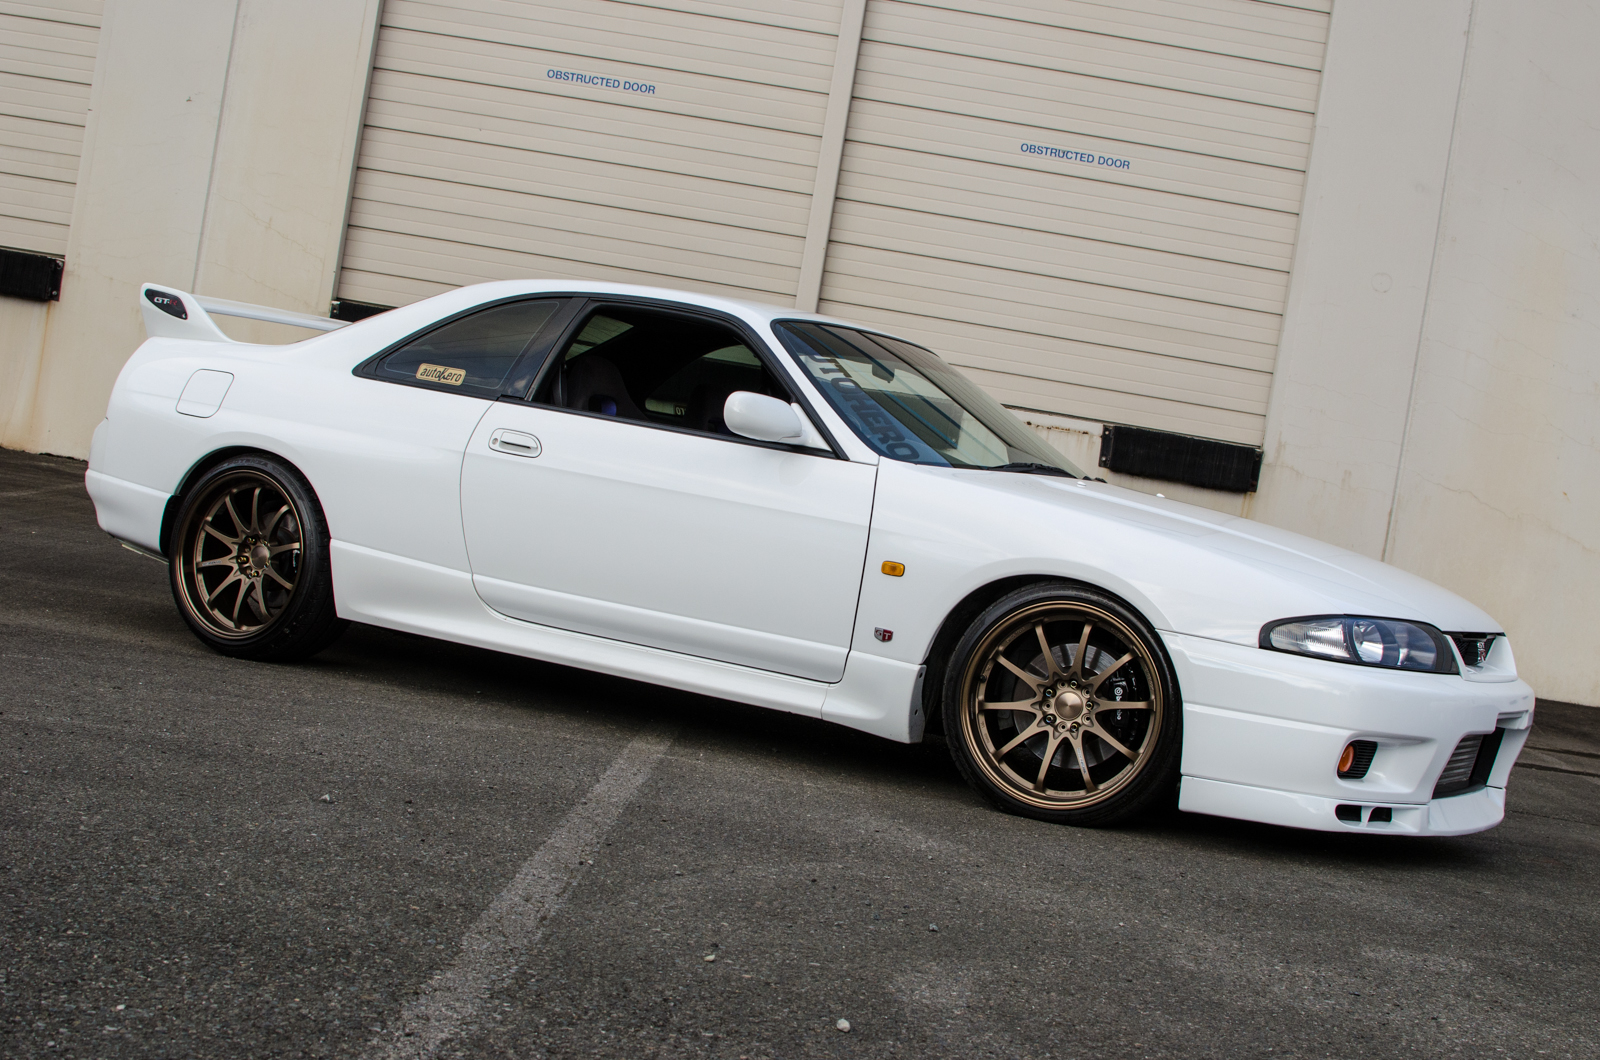 flawless victory spec 597 hp 1995 nissan skyline gt r v spec import meet. Black Bedroom Furniture Sets. Home Design Ideas